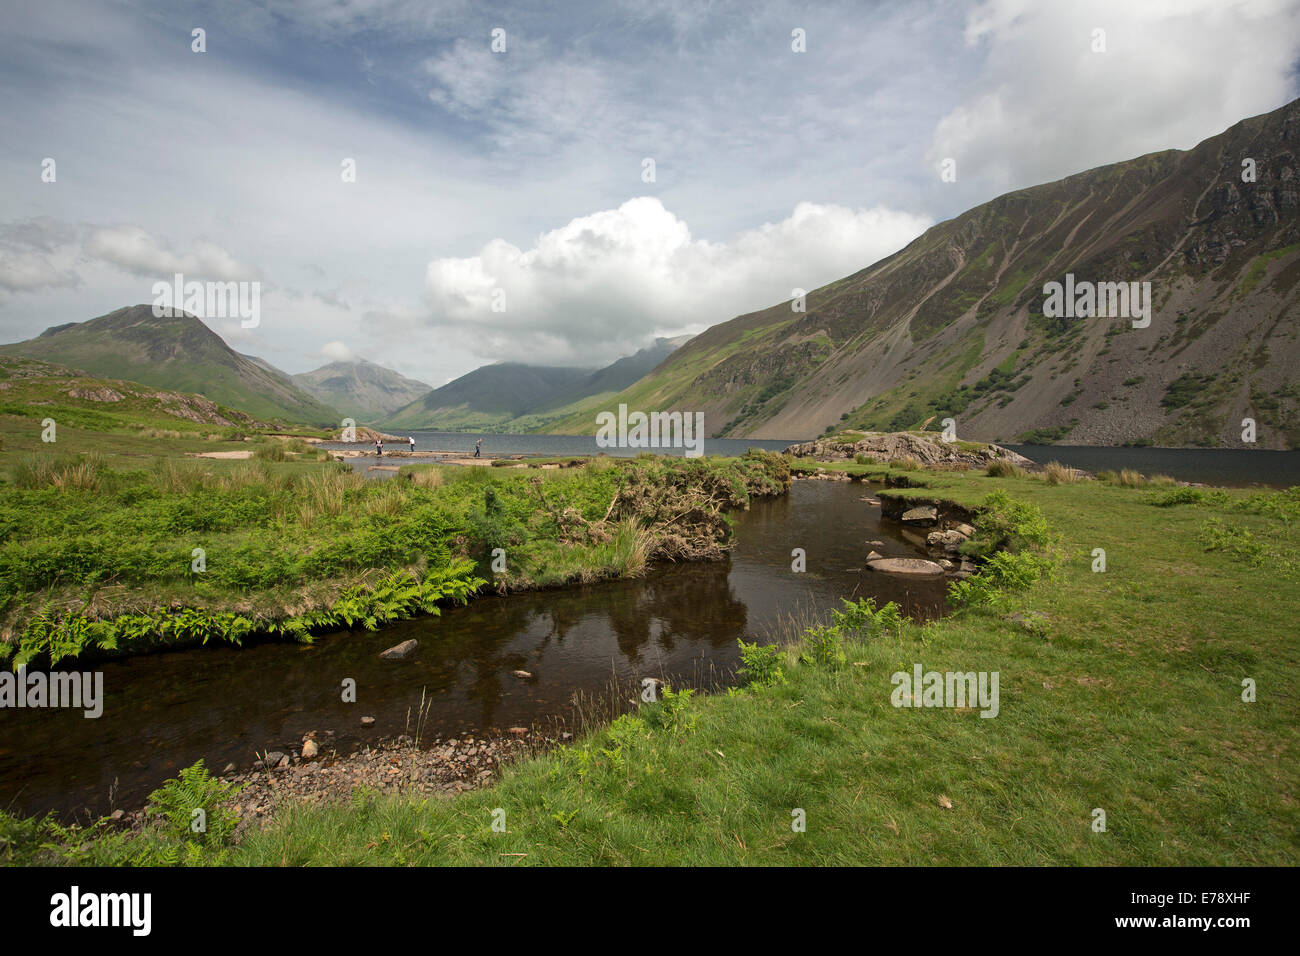 Wastwater lake surrounded by mountain peaks coated with green vegetation, draped with low cloud, Lake District, - Stock Image